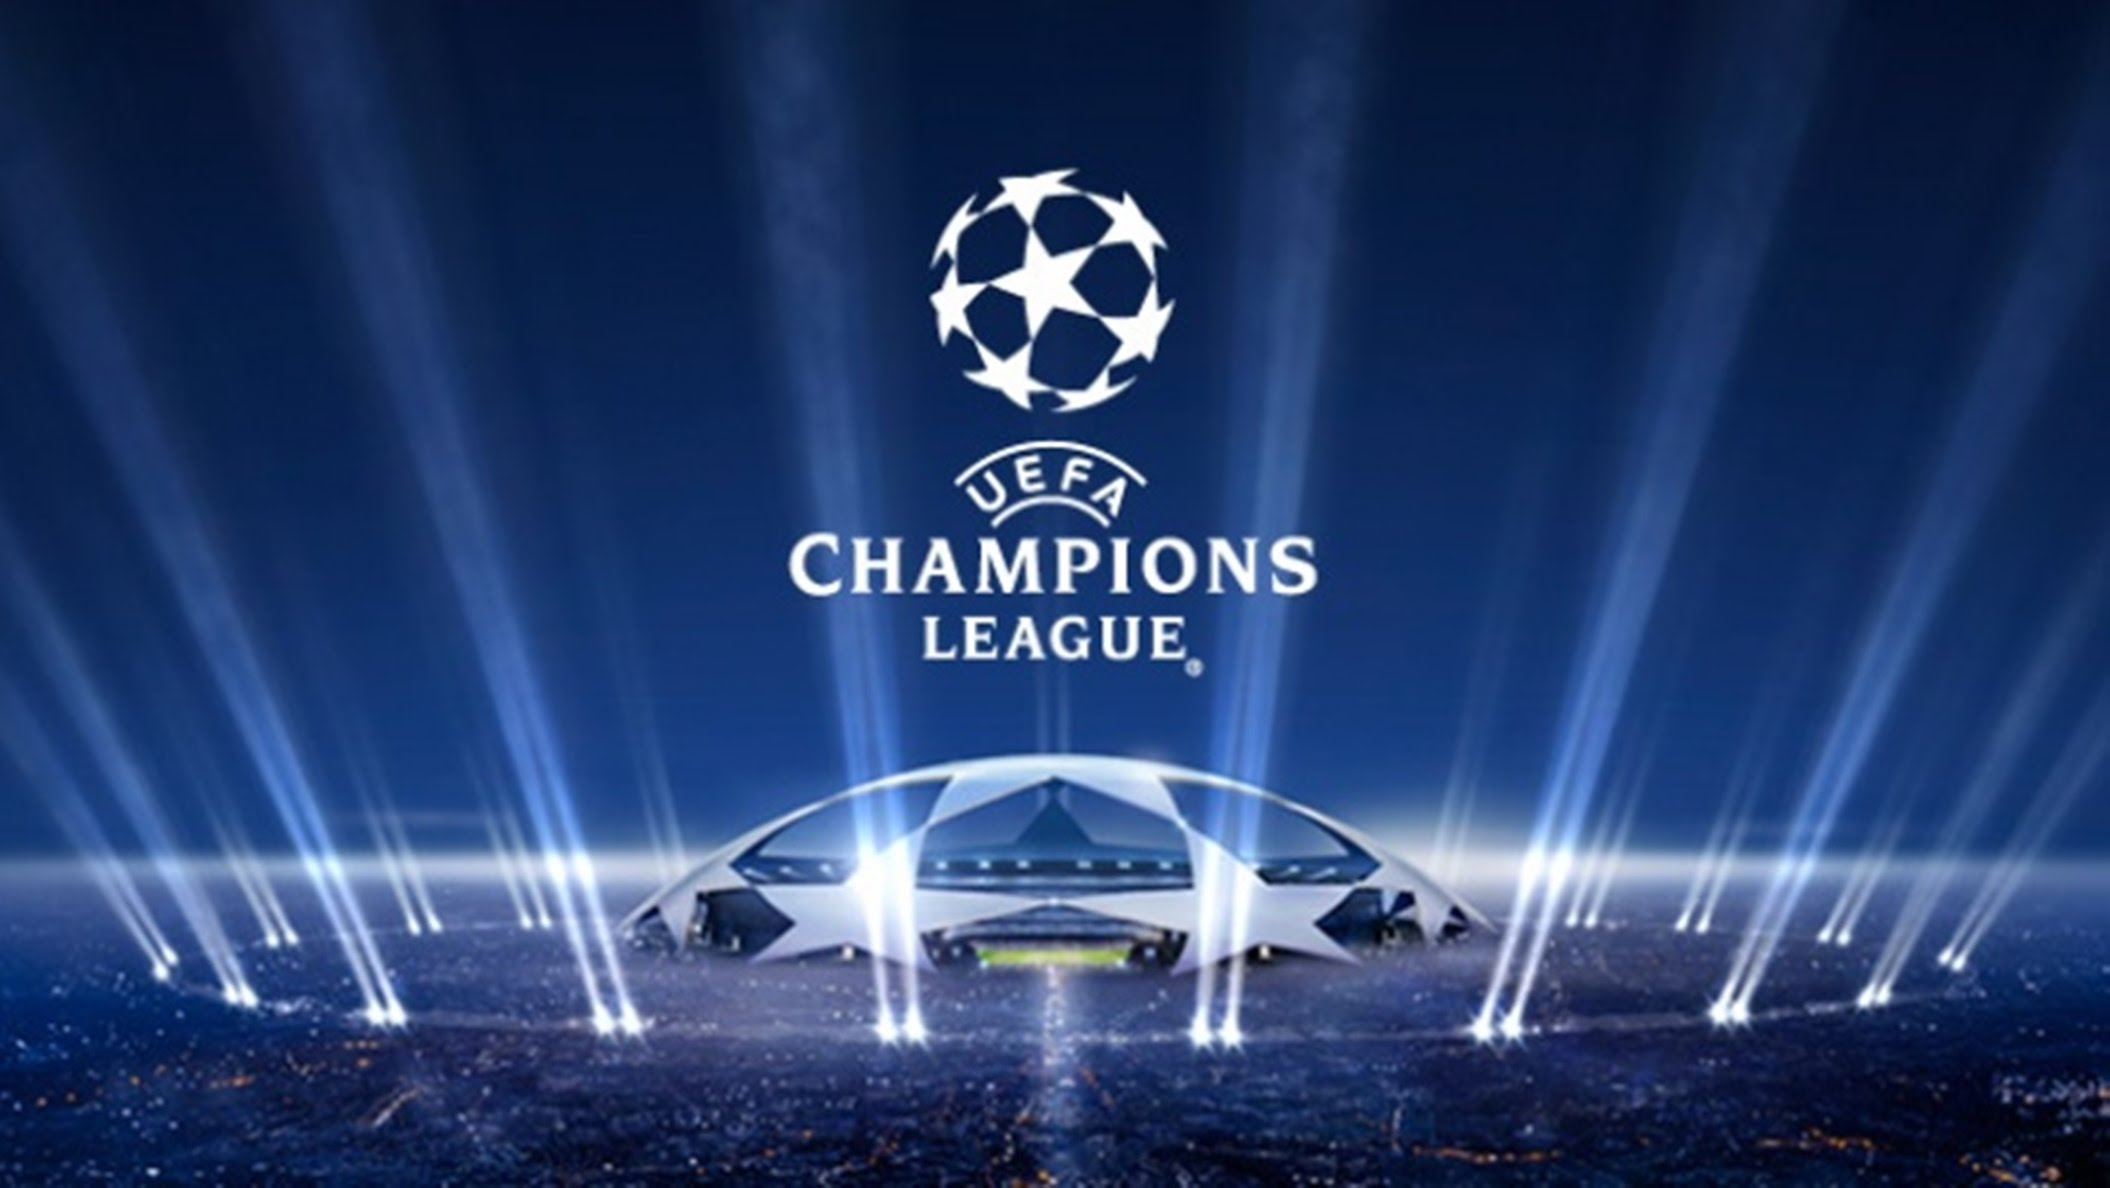 Champions League 2016/17 Draw - TSM PLUG